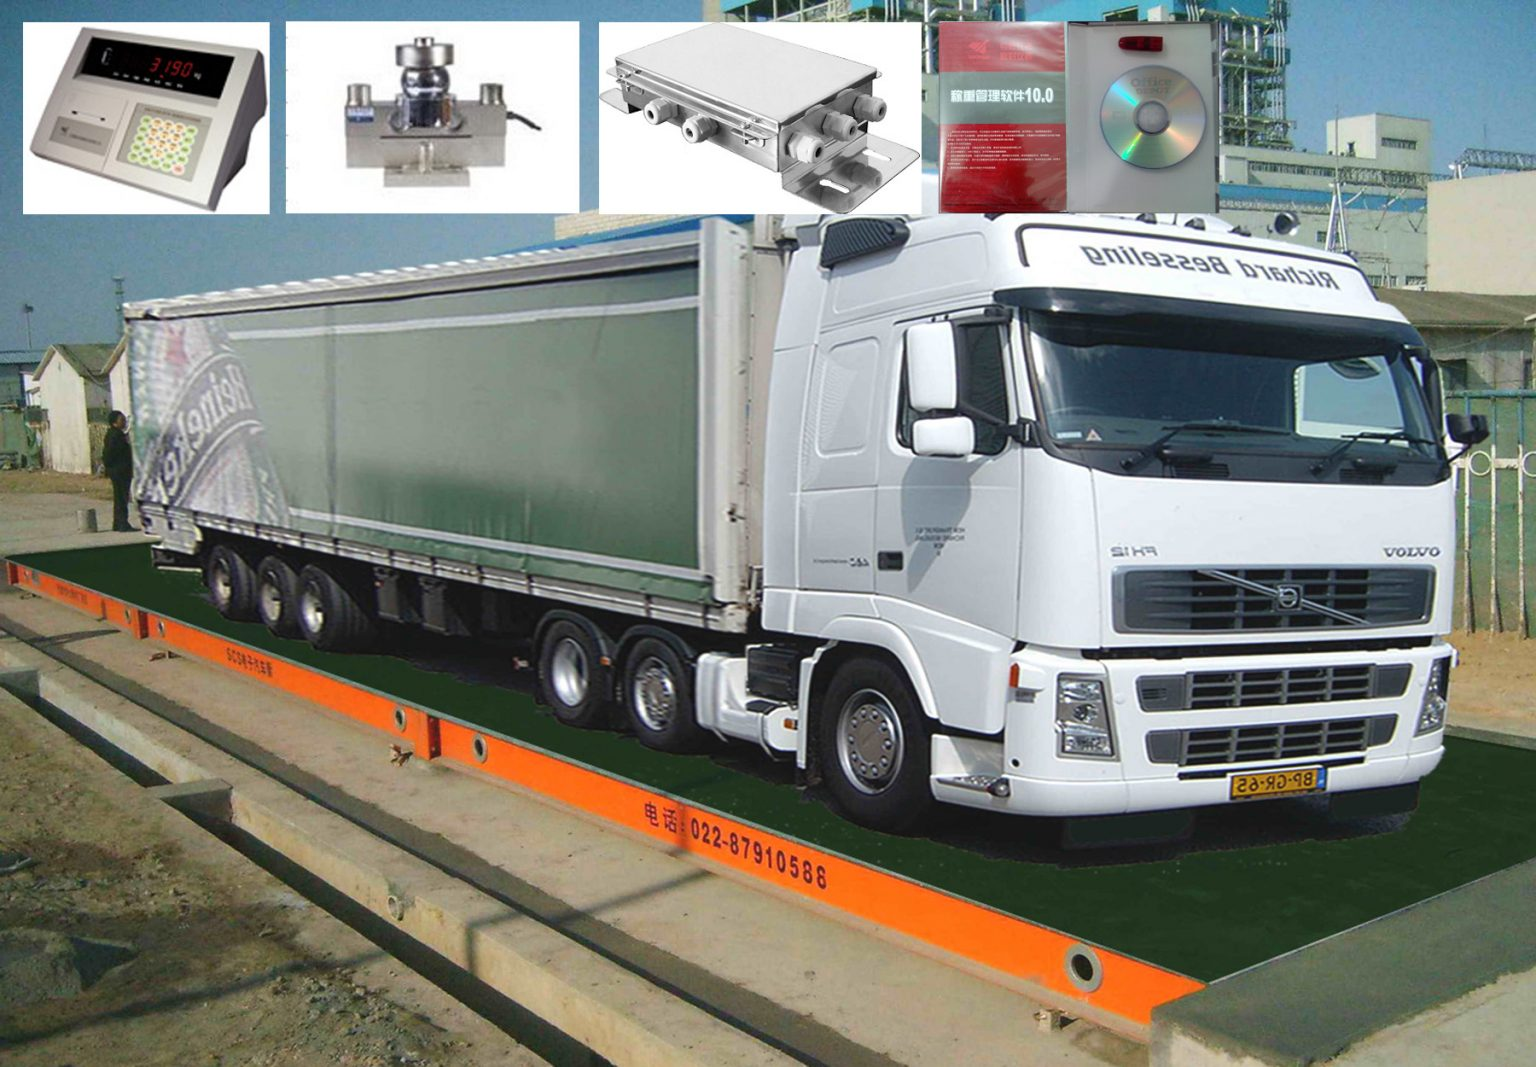 Chinese Weighbridges / Truck Scales.